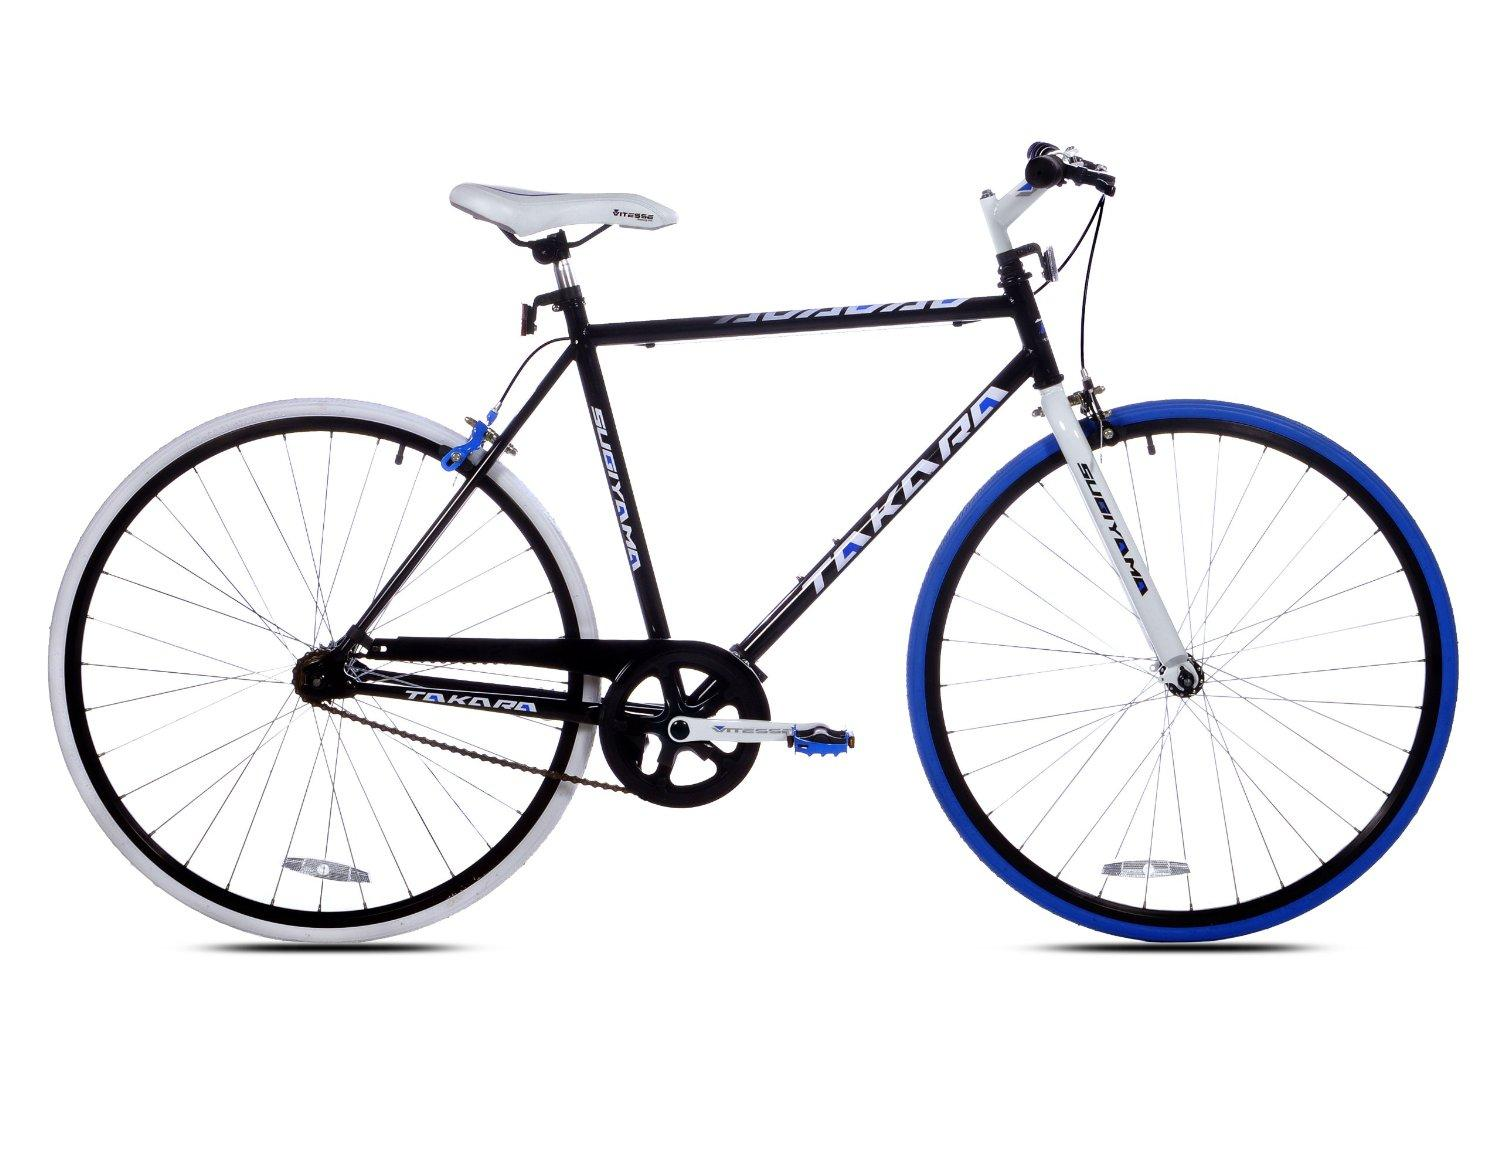 Takara Sugiyama Flat Bar Fixie Bike (700c Wheels, 58cm Frame)